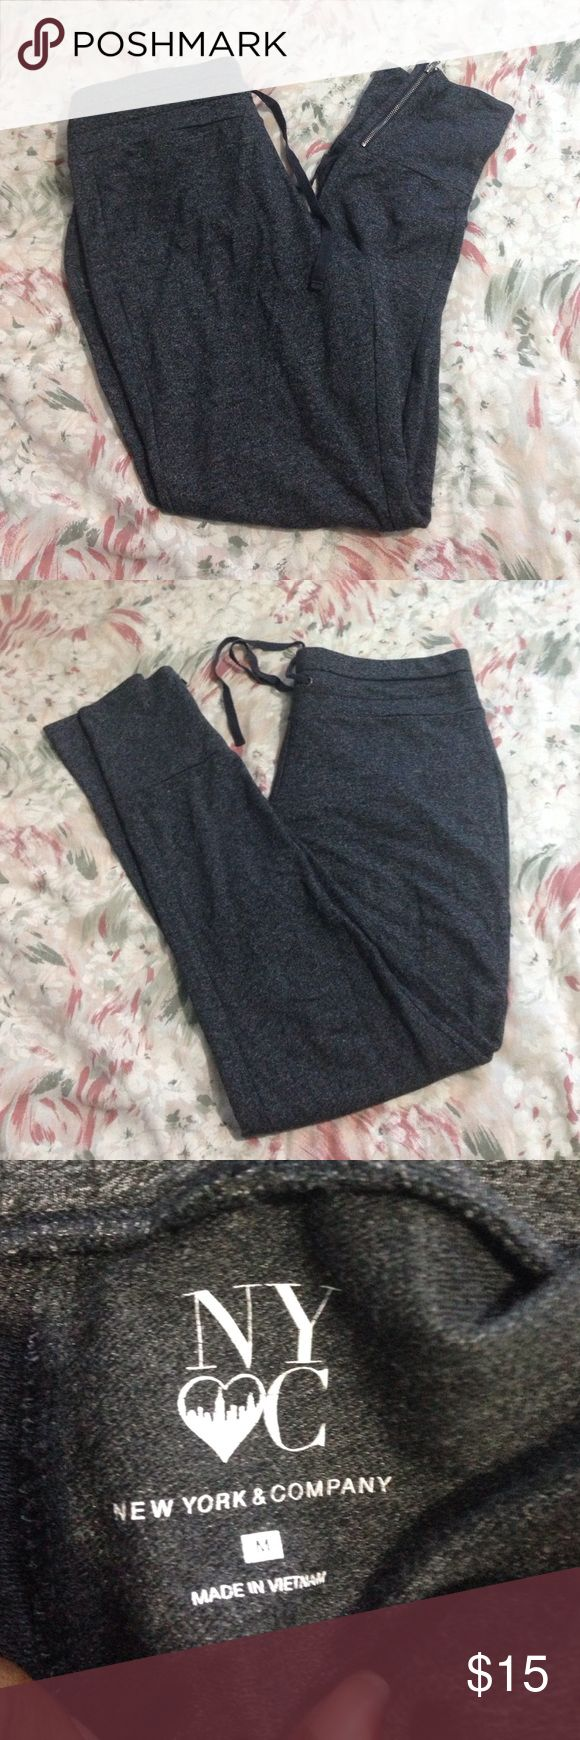 Grey joggers Heathered grey joggers. Size M but fits like a S New York & Company Pants Track Pants & Joggers